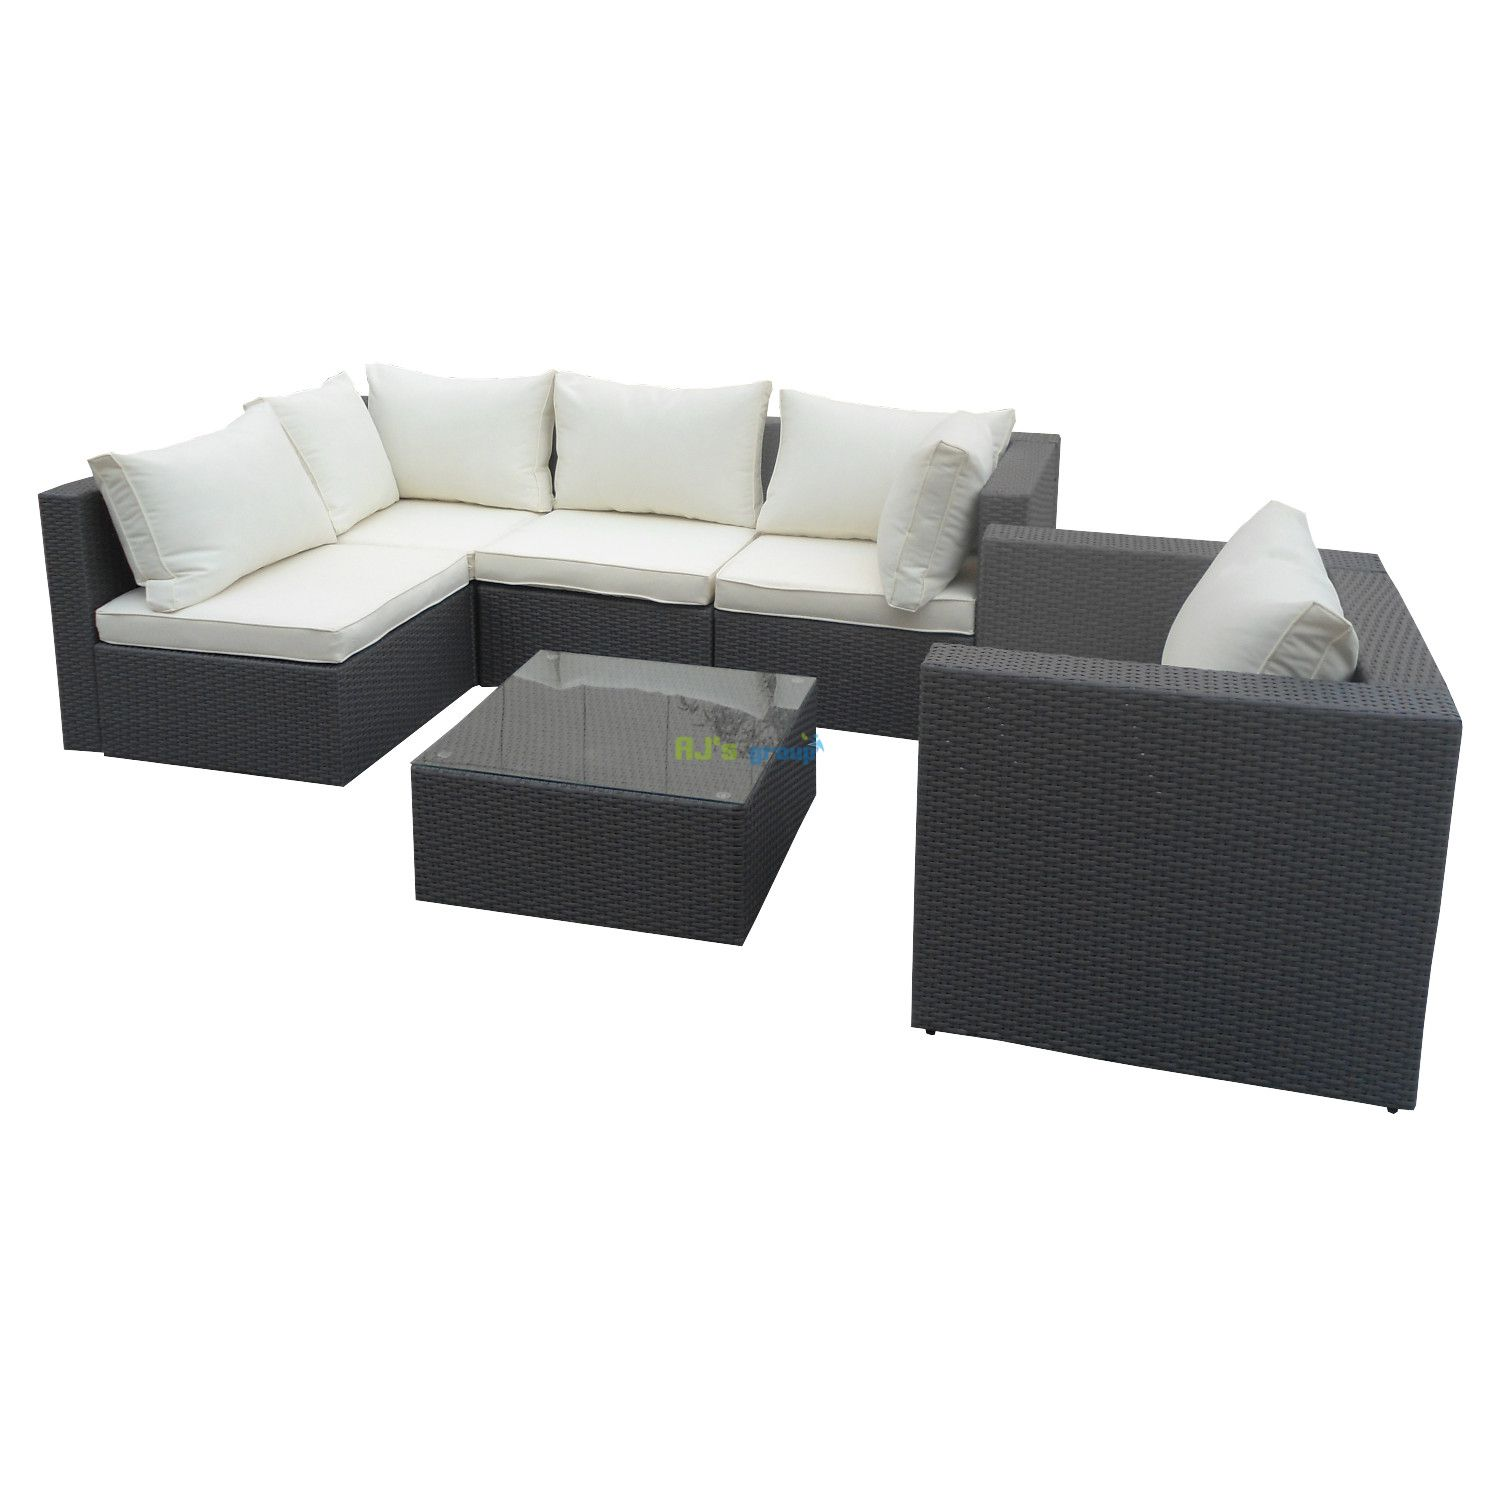 rattan wicker garden patio set jamaica outdoor lounge furniture couch. Black Bedroom Furniture Sets. Home Design Ideas